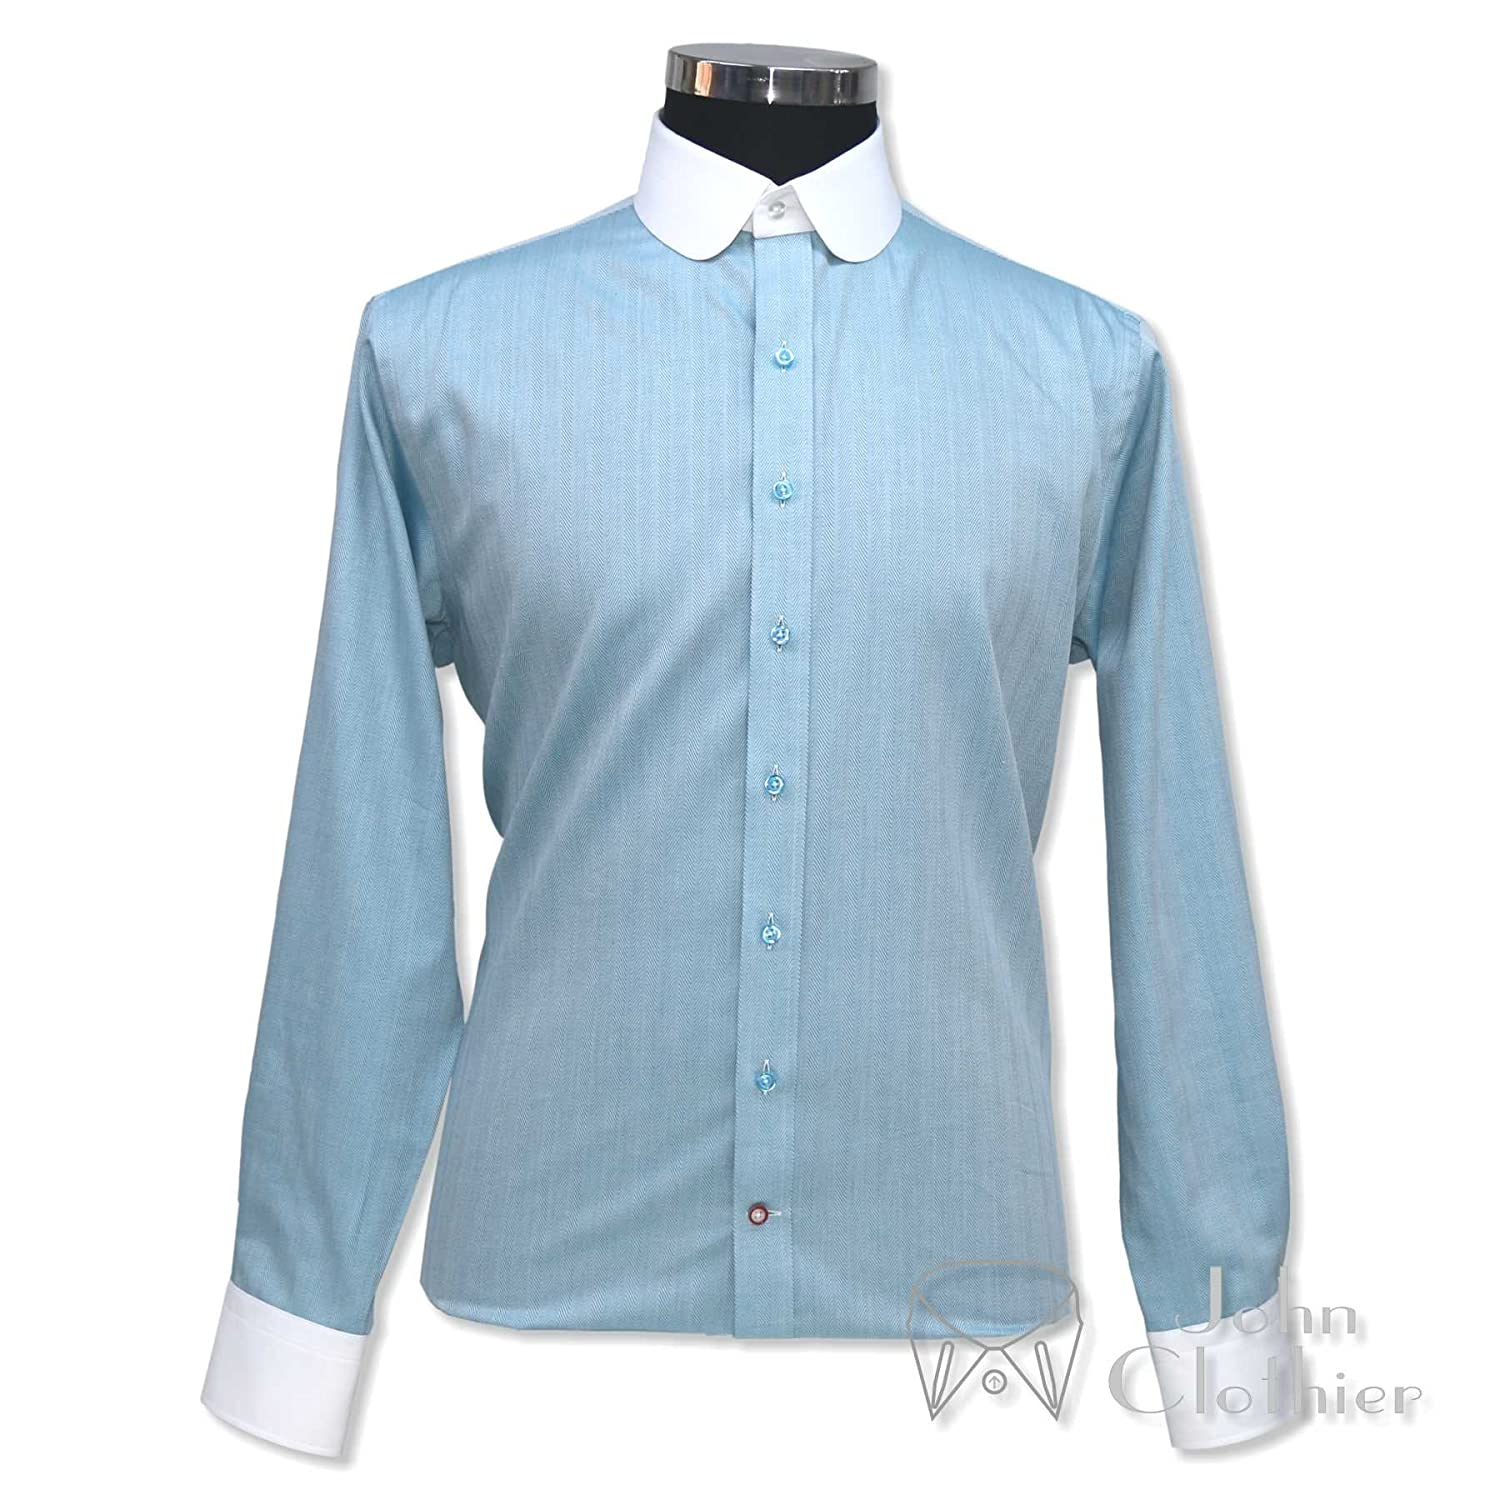 1960s – 70s Mens Shirts- Disco Shirts, Hippie Shirts WhitePilotShirts Round Collar Peaky Blinders Mens Bankers Shirt Sea Blue Herringbone 100% Cotton Penny Collar Gents 100-26 $99.99 AT vintagedancer.com